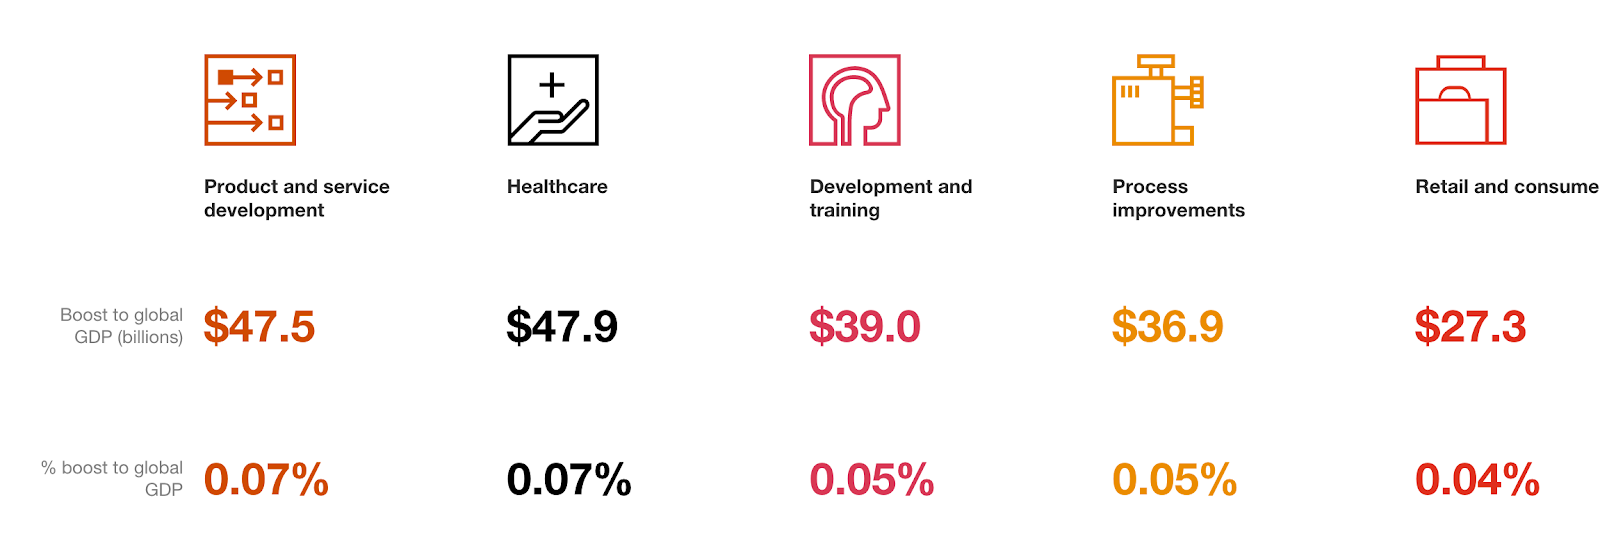 The global boost to GDP from the adoption of augmented reality and virtual reality in product and service development, retail, healthcare, and training and development